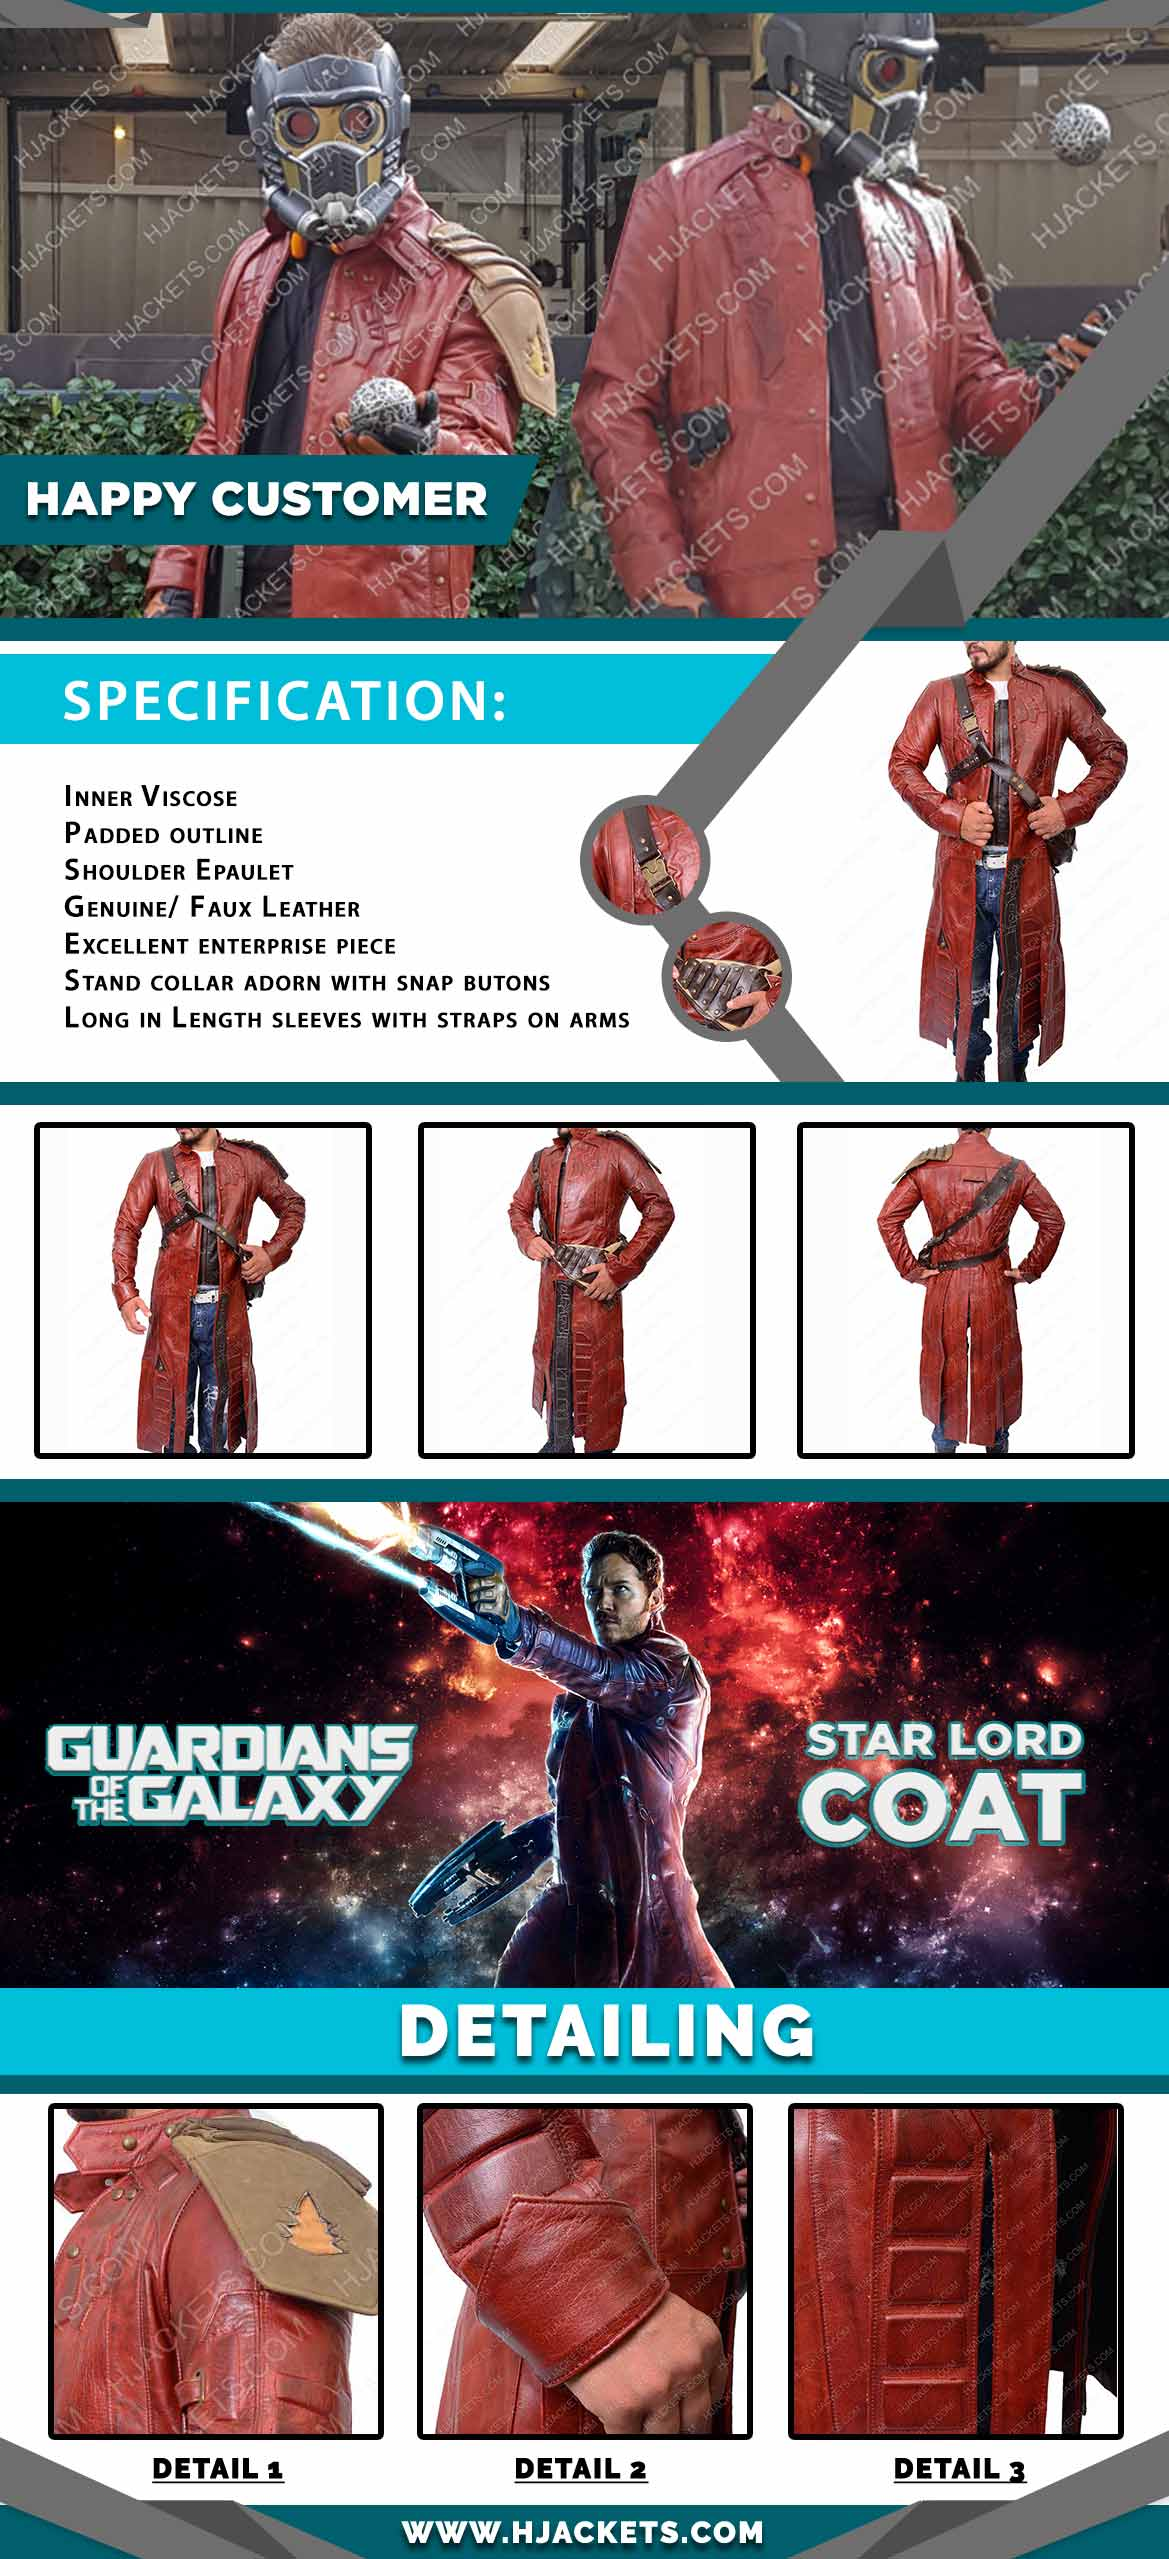 Guardians of the Galaxy Coat Info